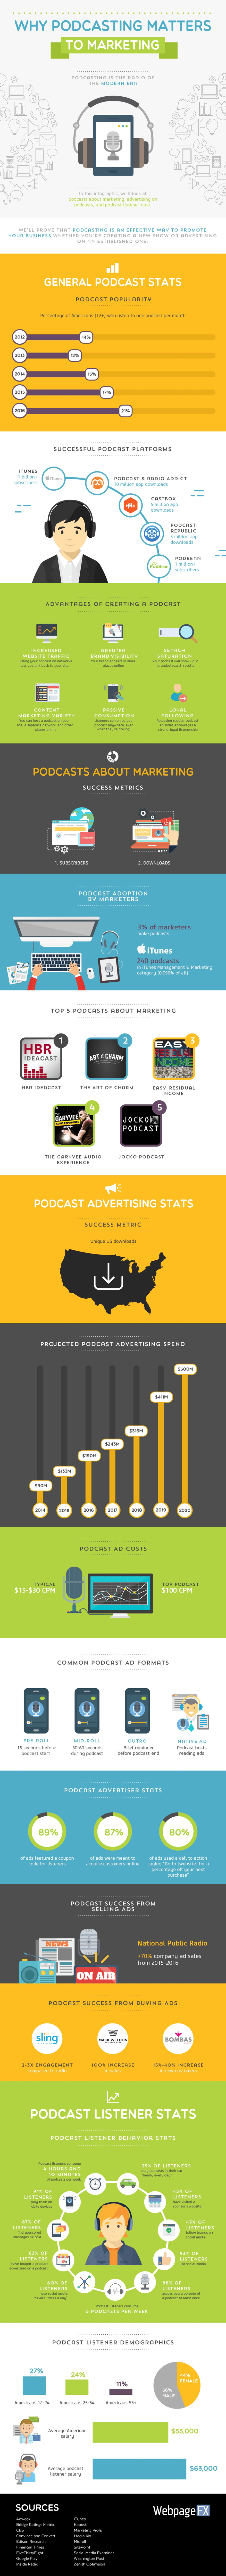 Podcast Marketing